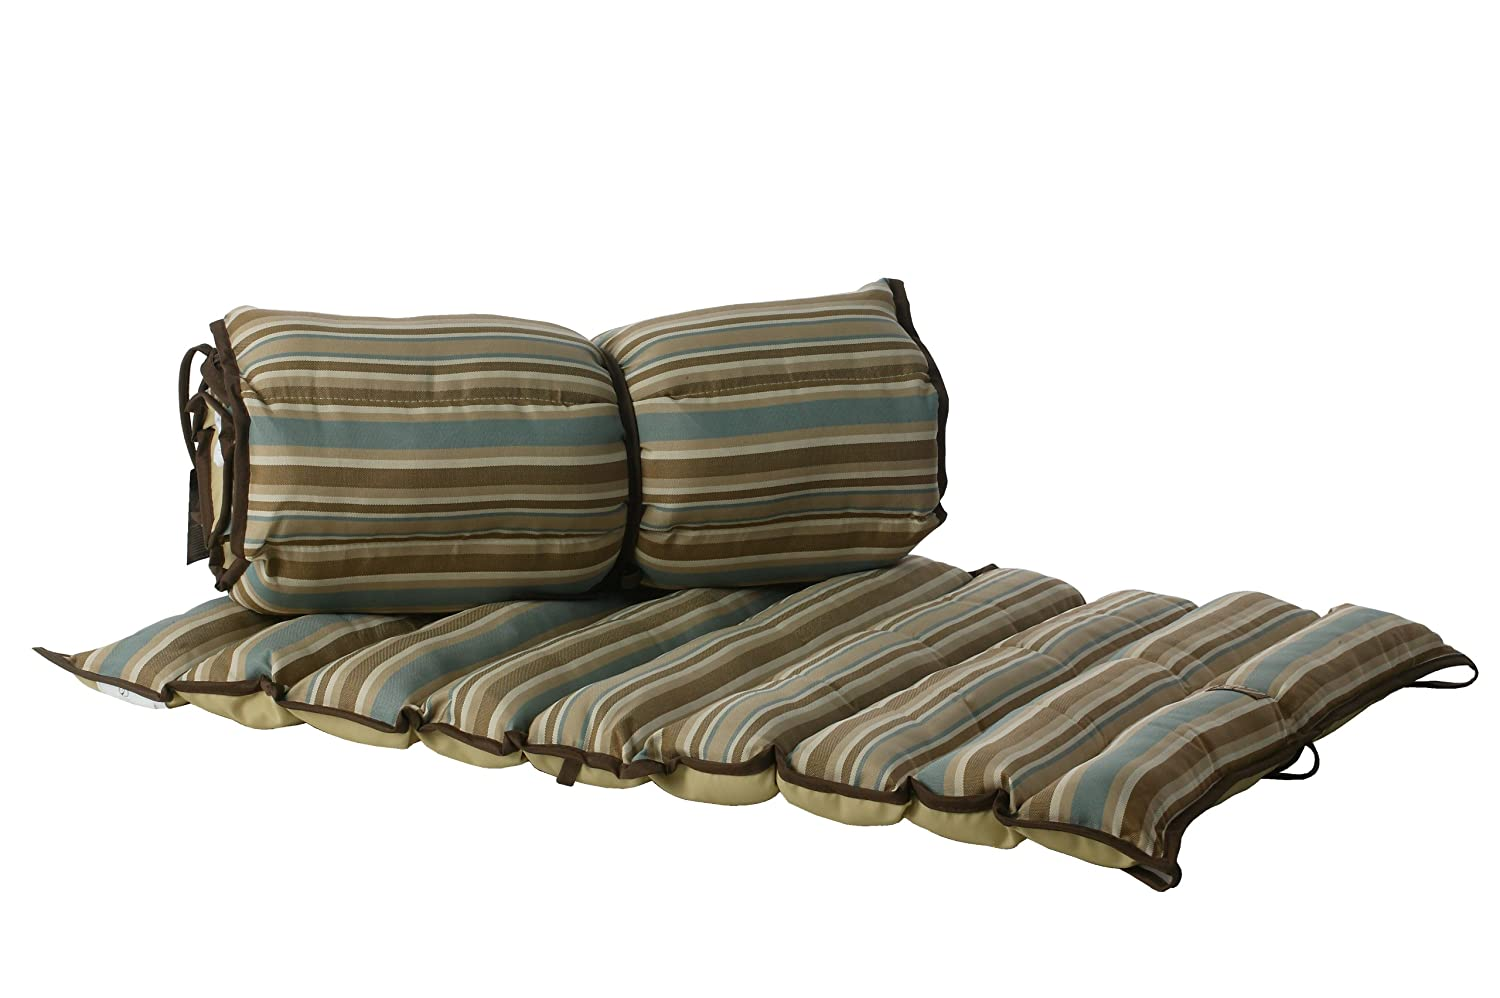 Indoor Outdoor Roll-up Travel Bed